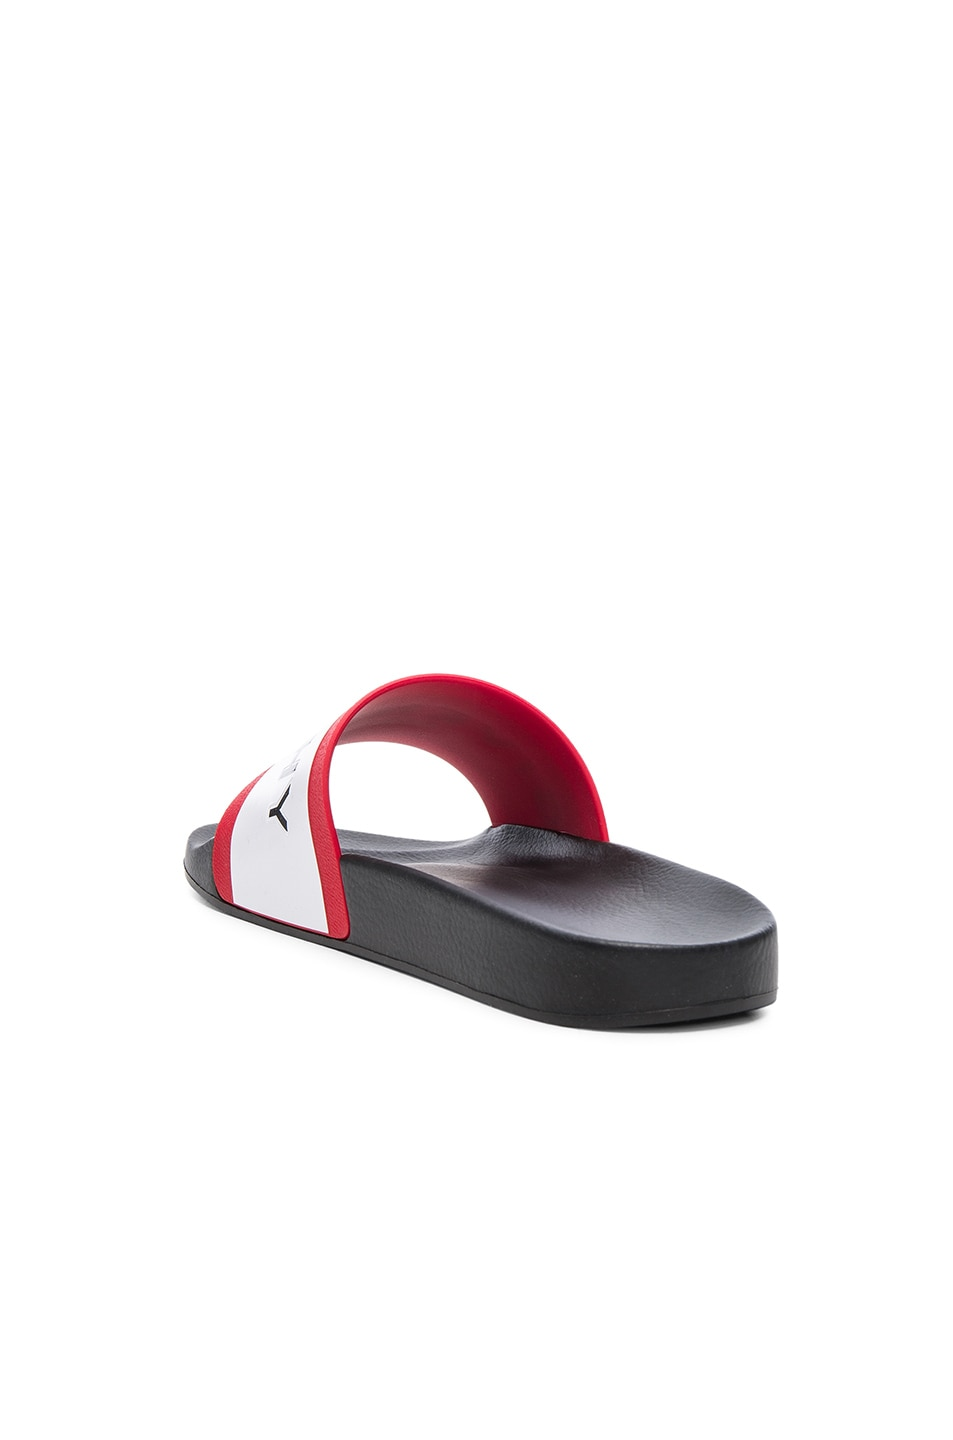 Image 4 of Givenchy Slide Sandals in Black, White & Red